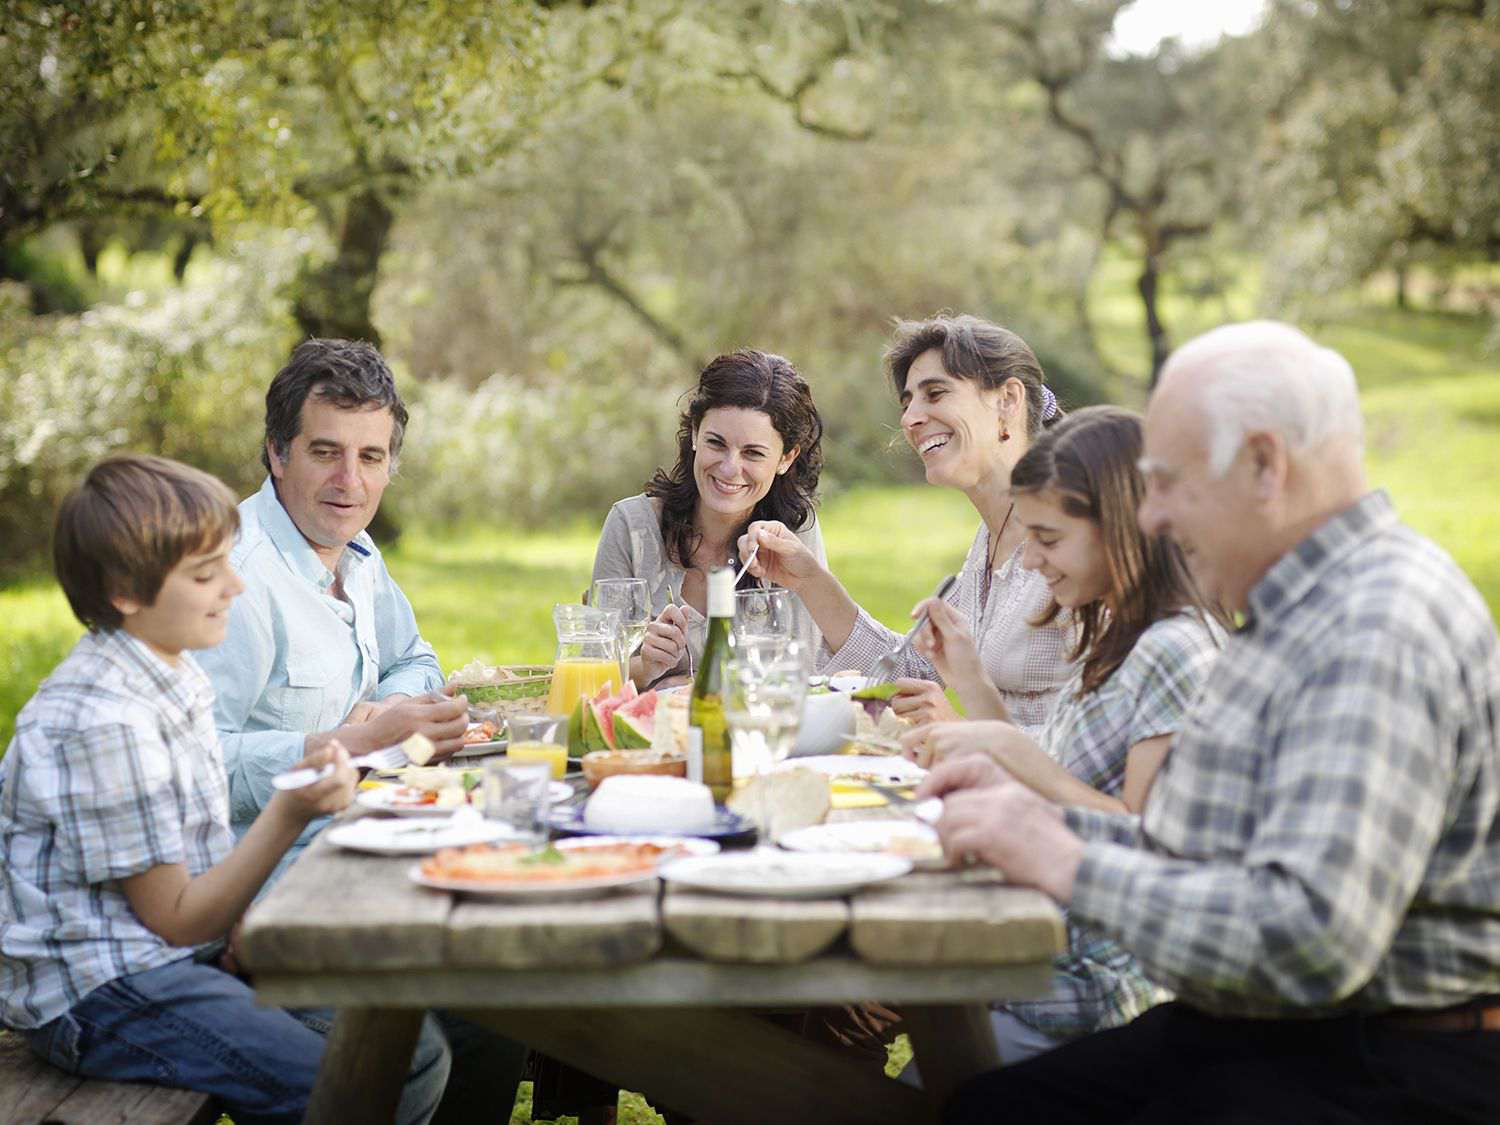 Family Having Meal in Countryside